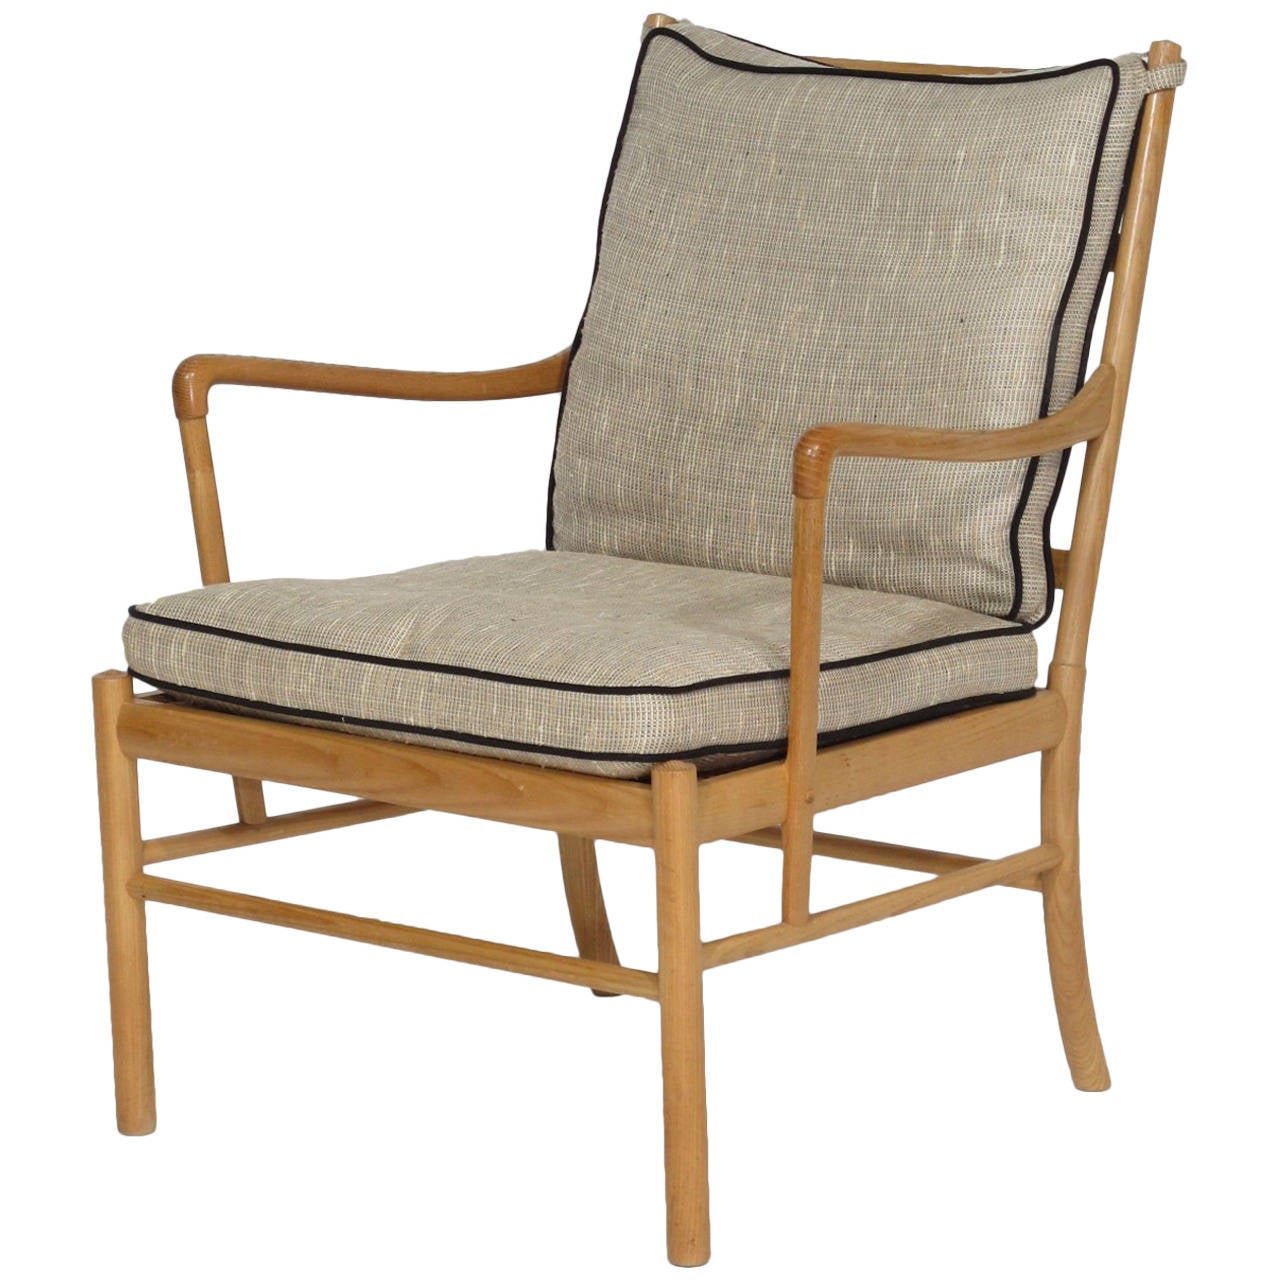 colonial wingback sofas leather direct from manufacturer ole wanscher chair at 1stdibs